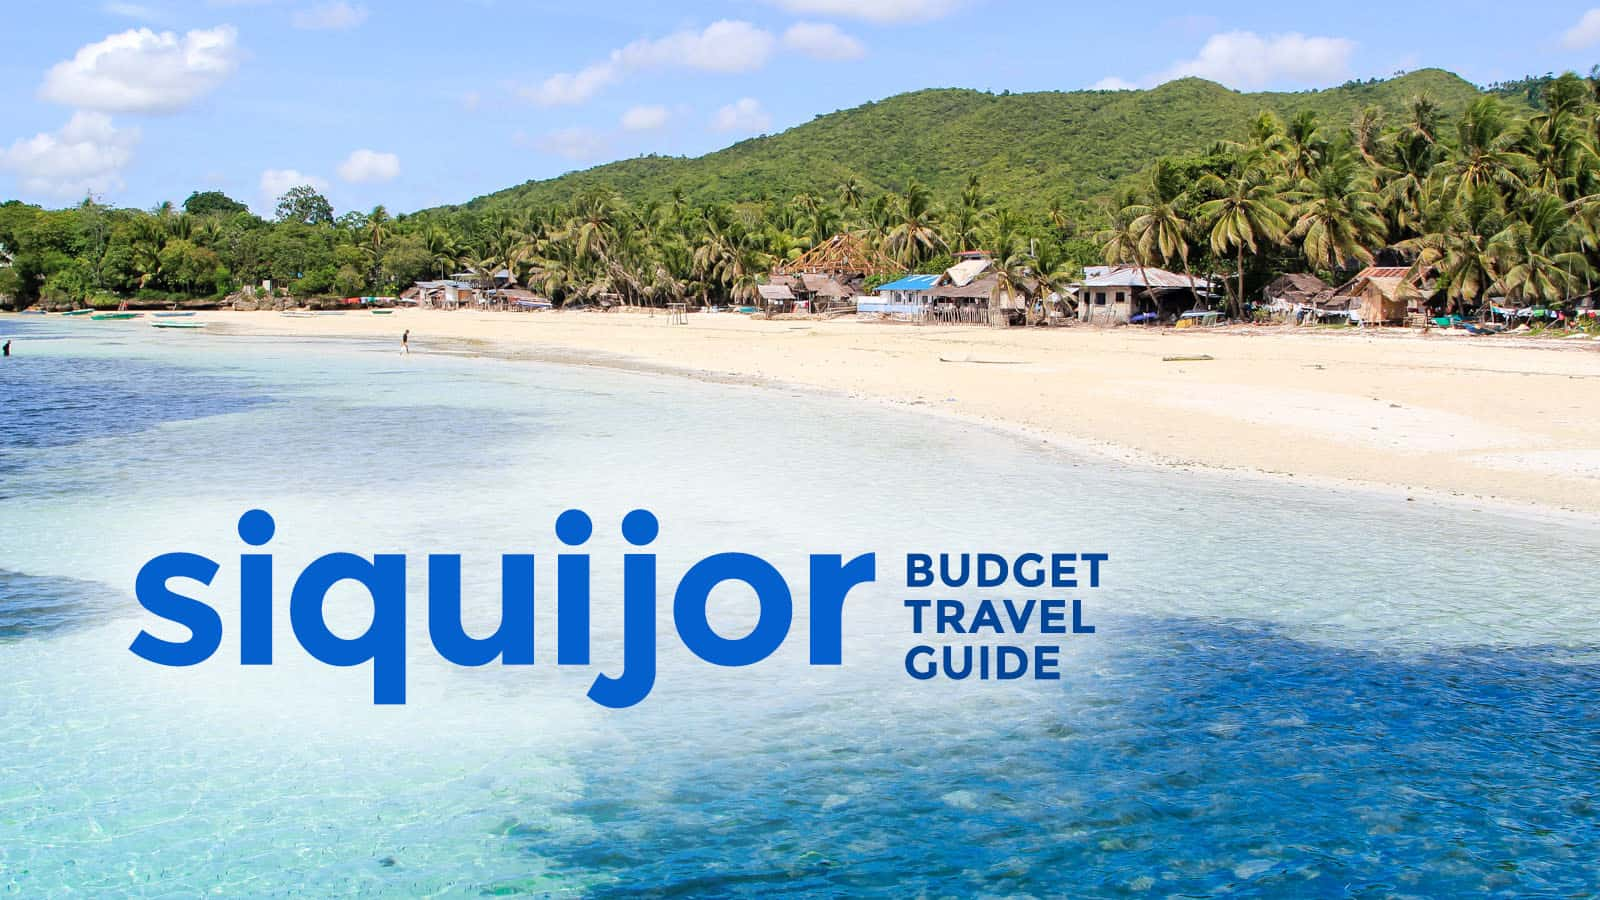 SIQUIJOR ON A BUDGET: Travel Guide & Itineraries